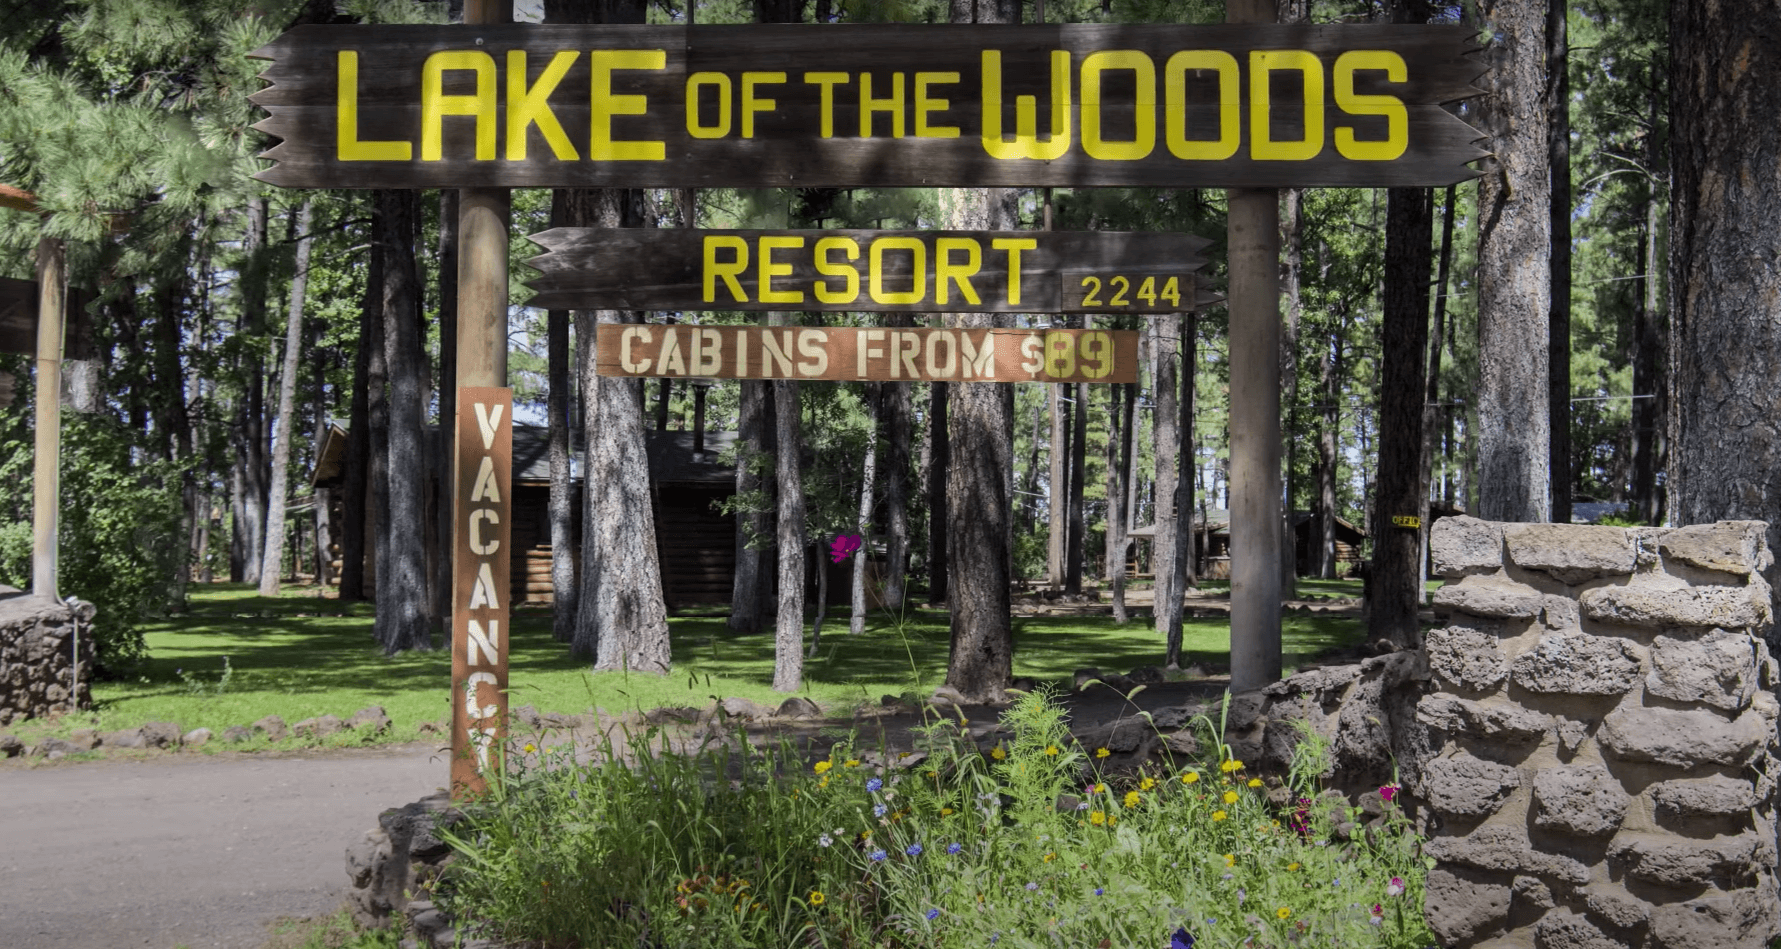 Resort Arizona Lake of the Woods